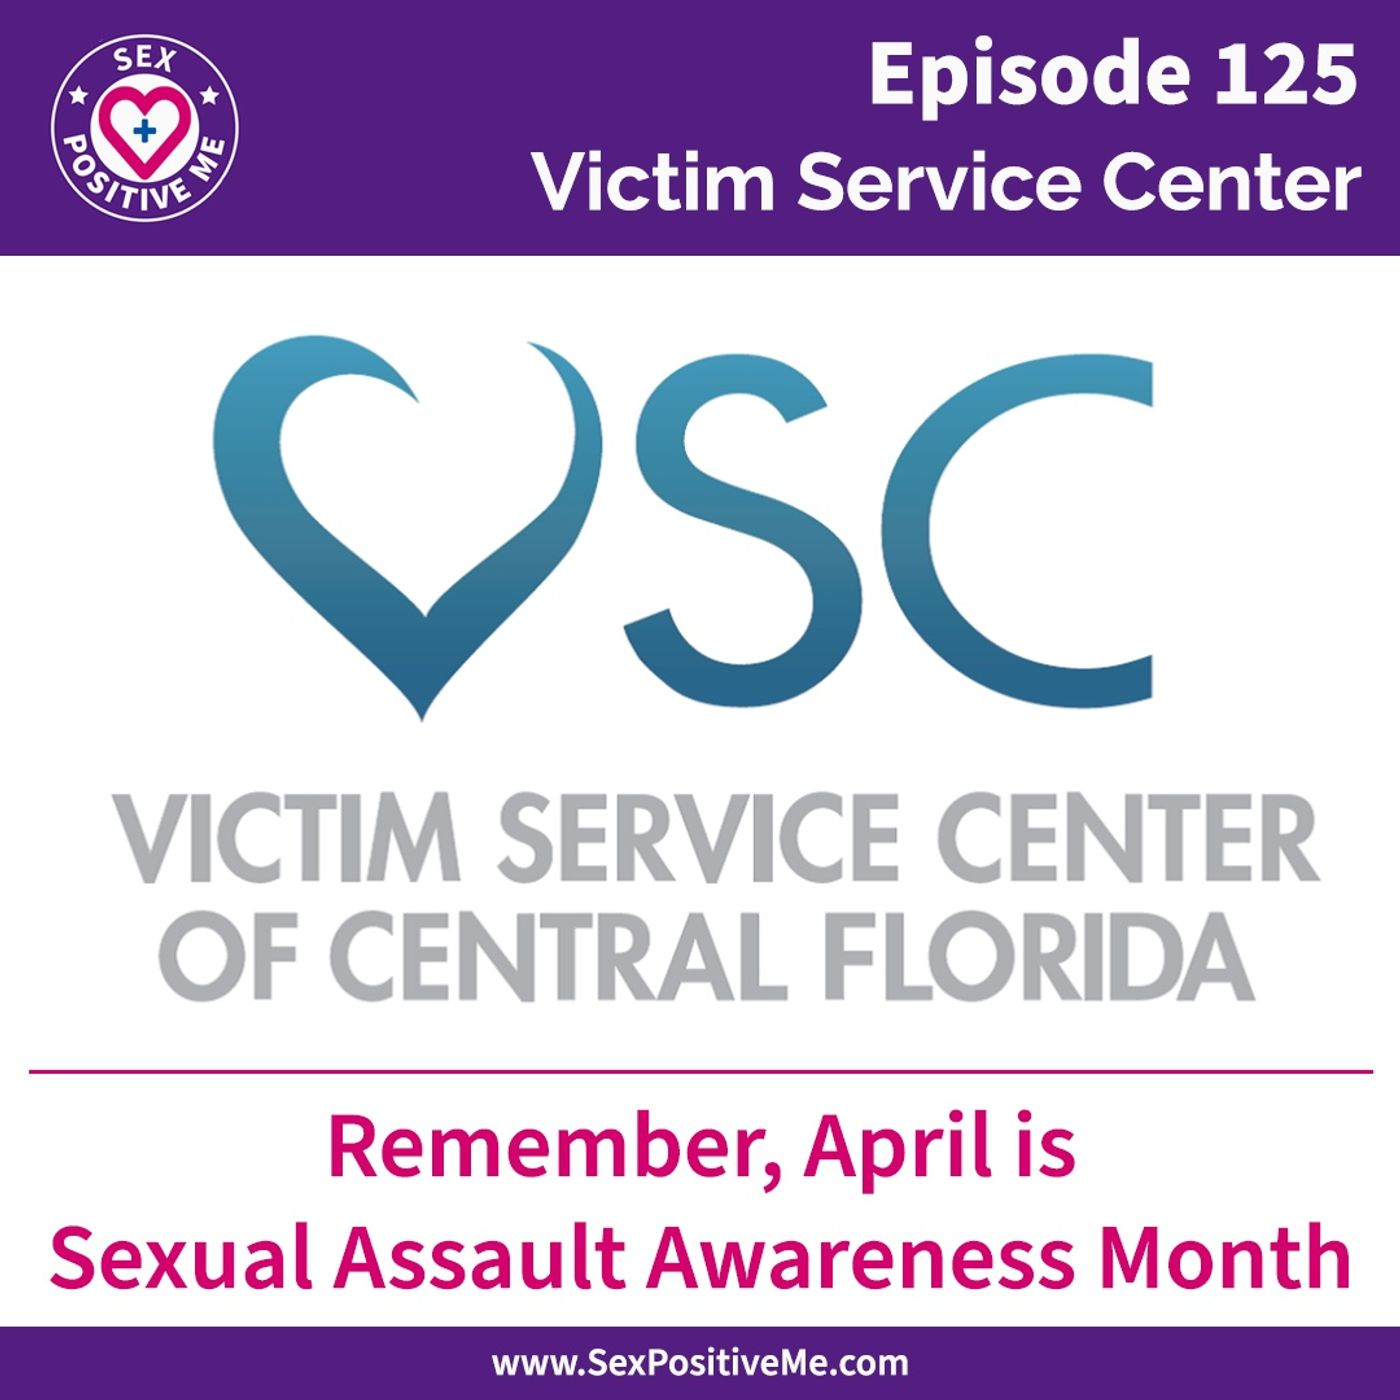 Sex Positive Me - E125: Victim Service Center of Central Florida